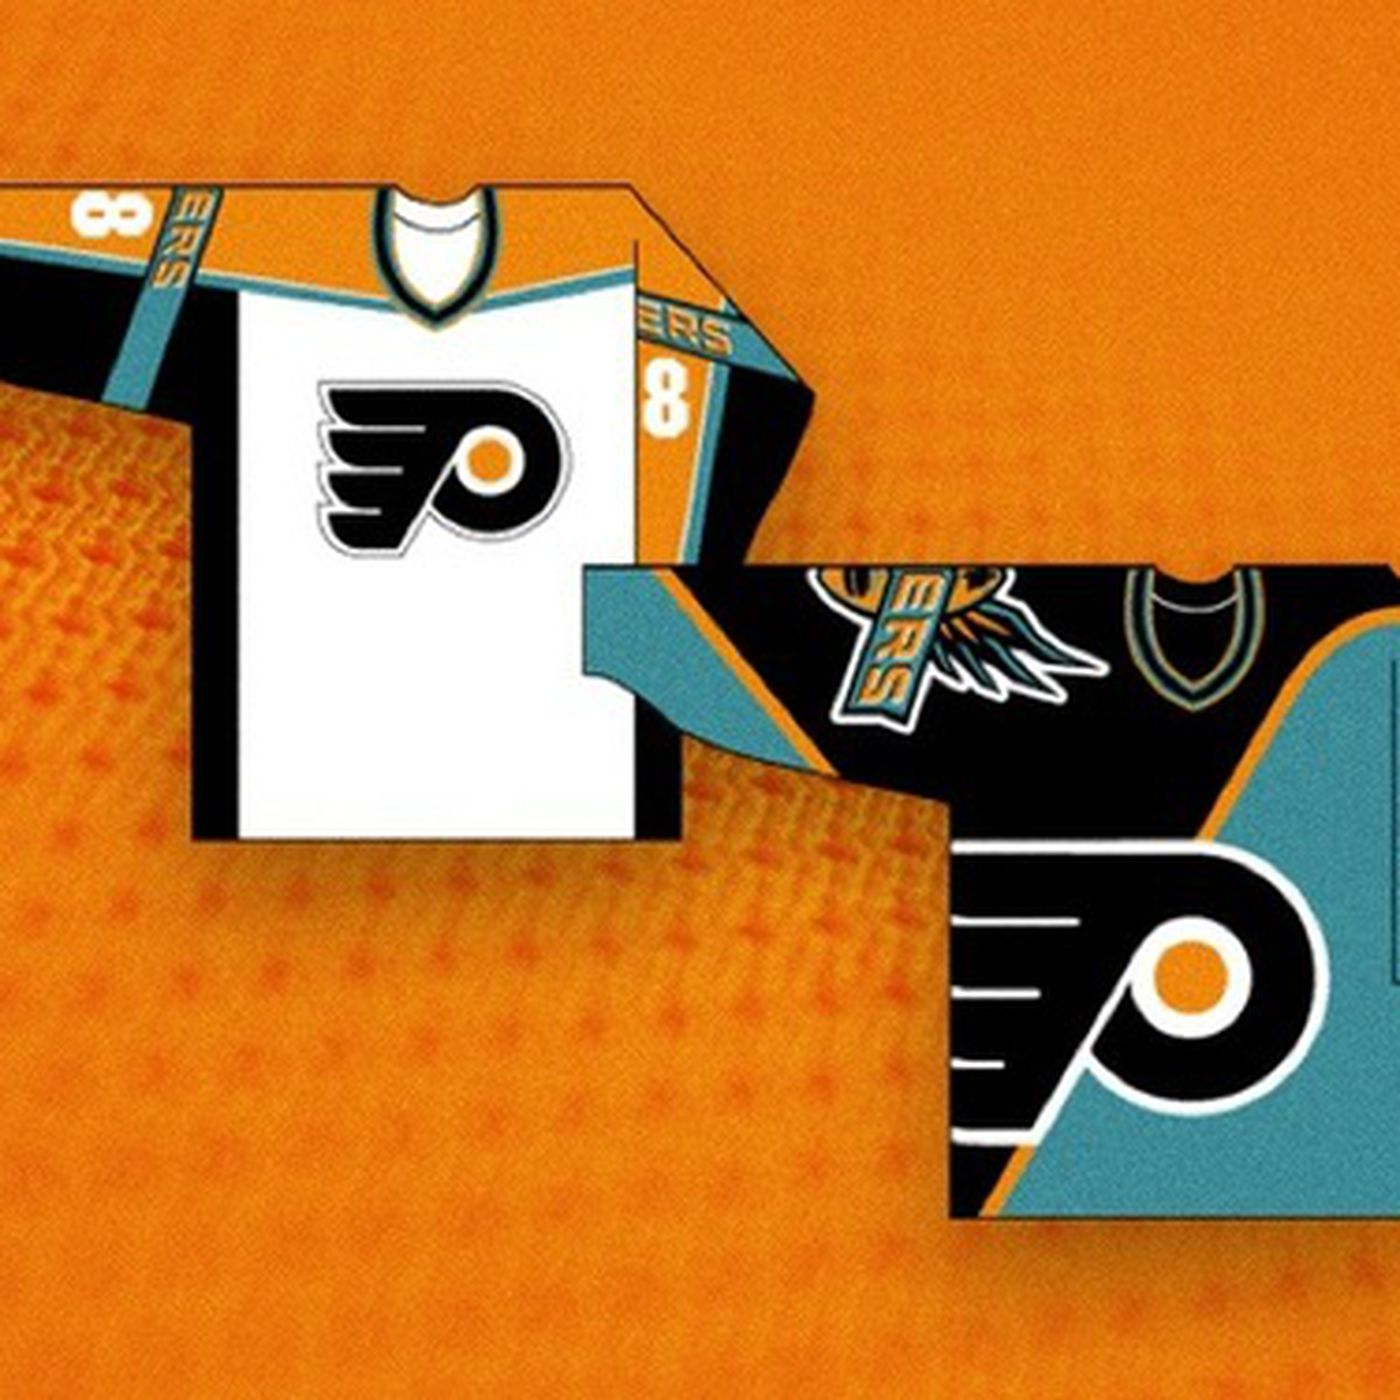 a5d6e7031 ... concept a8a70 2b171 free shipping the flyers almost had these awful  third jerseys broad street hockey f0206 f924c ...